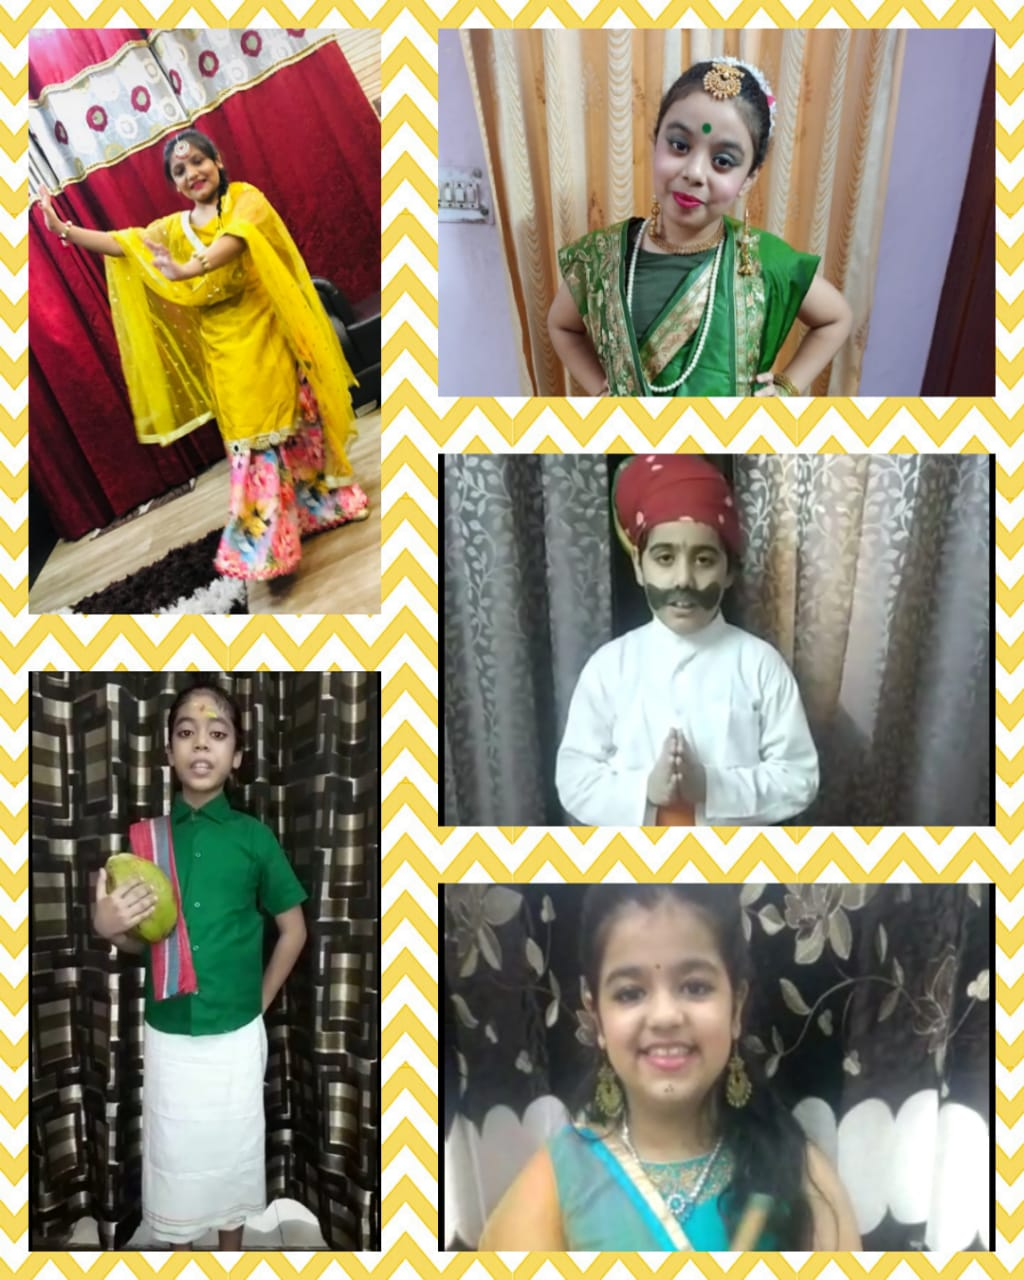 Fancy Dress activity (States of India) for classes III - V